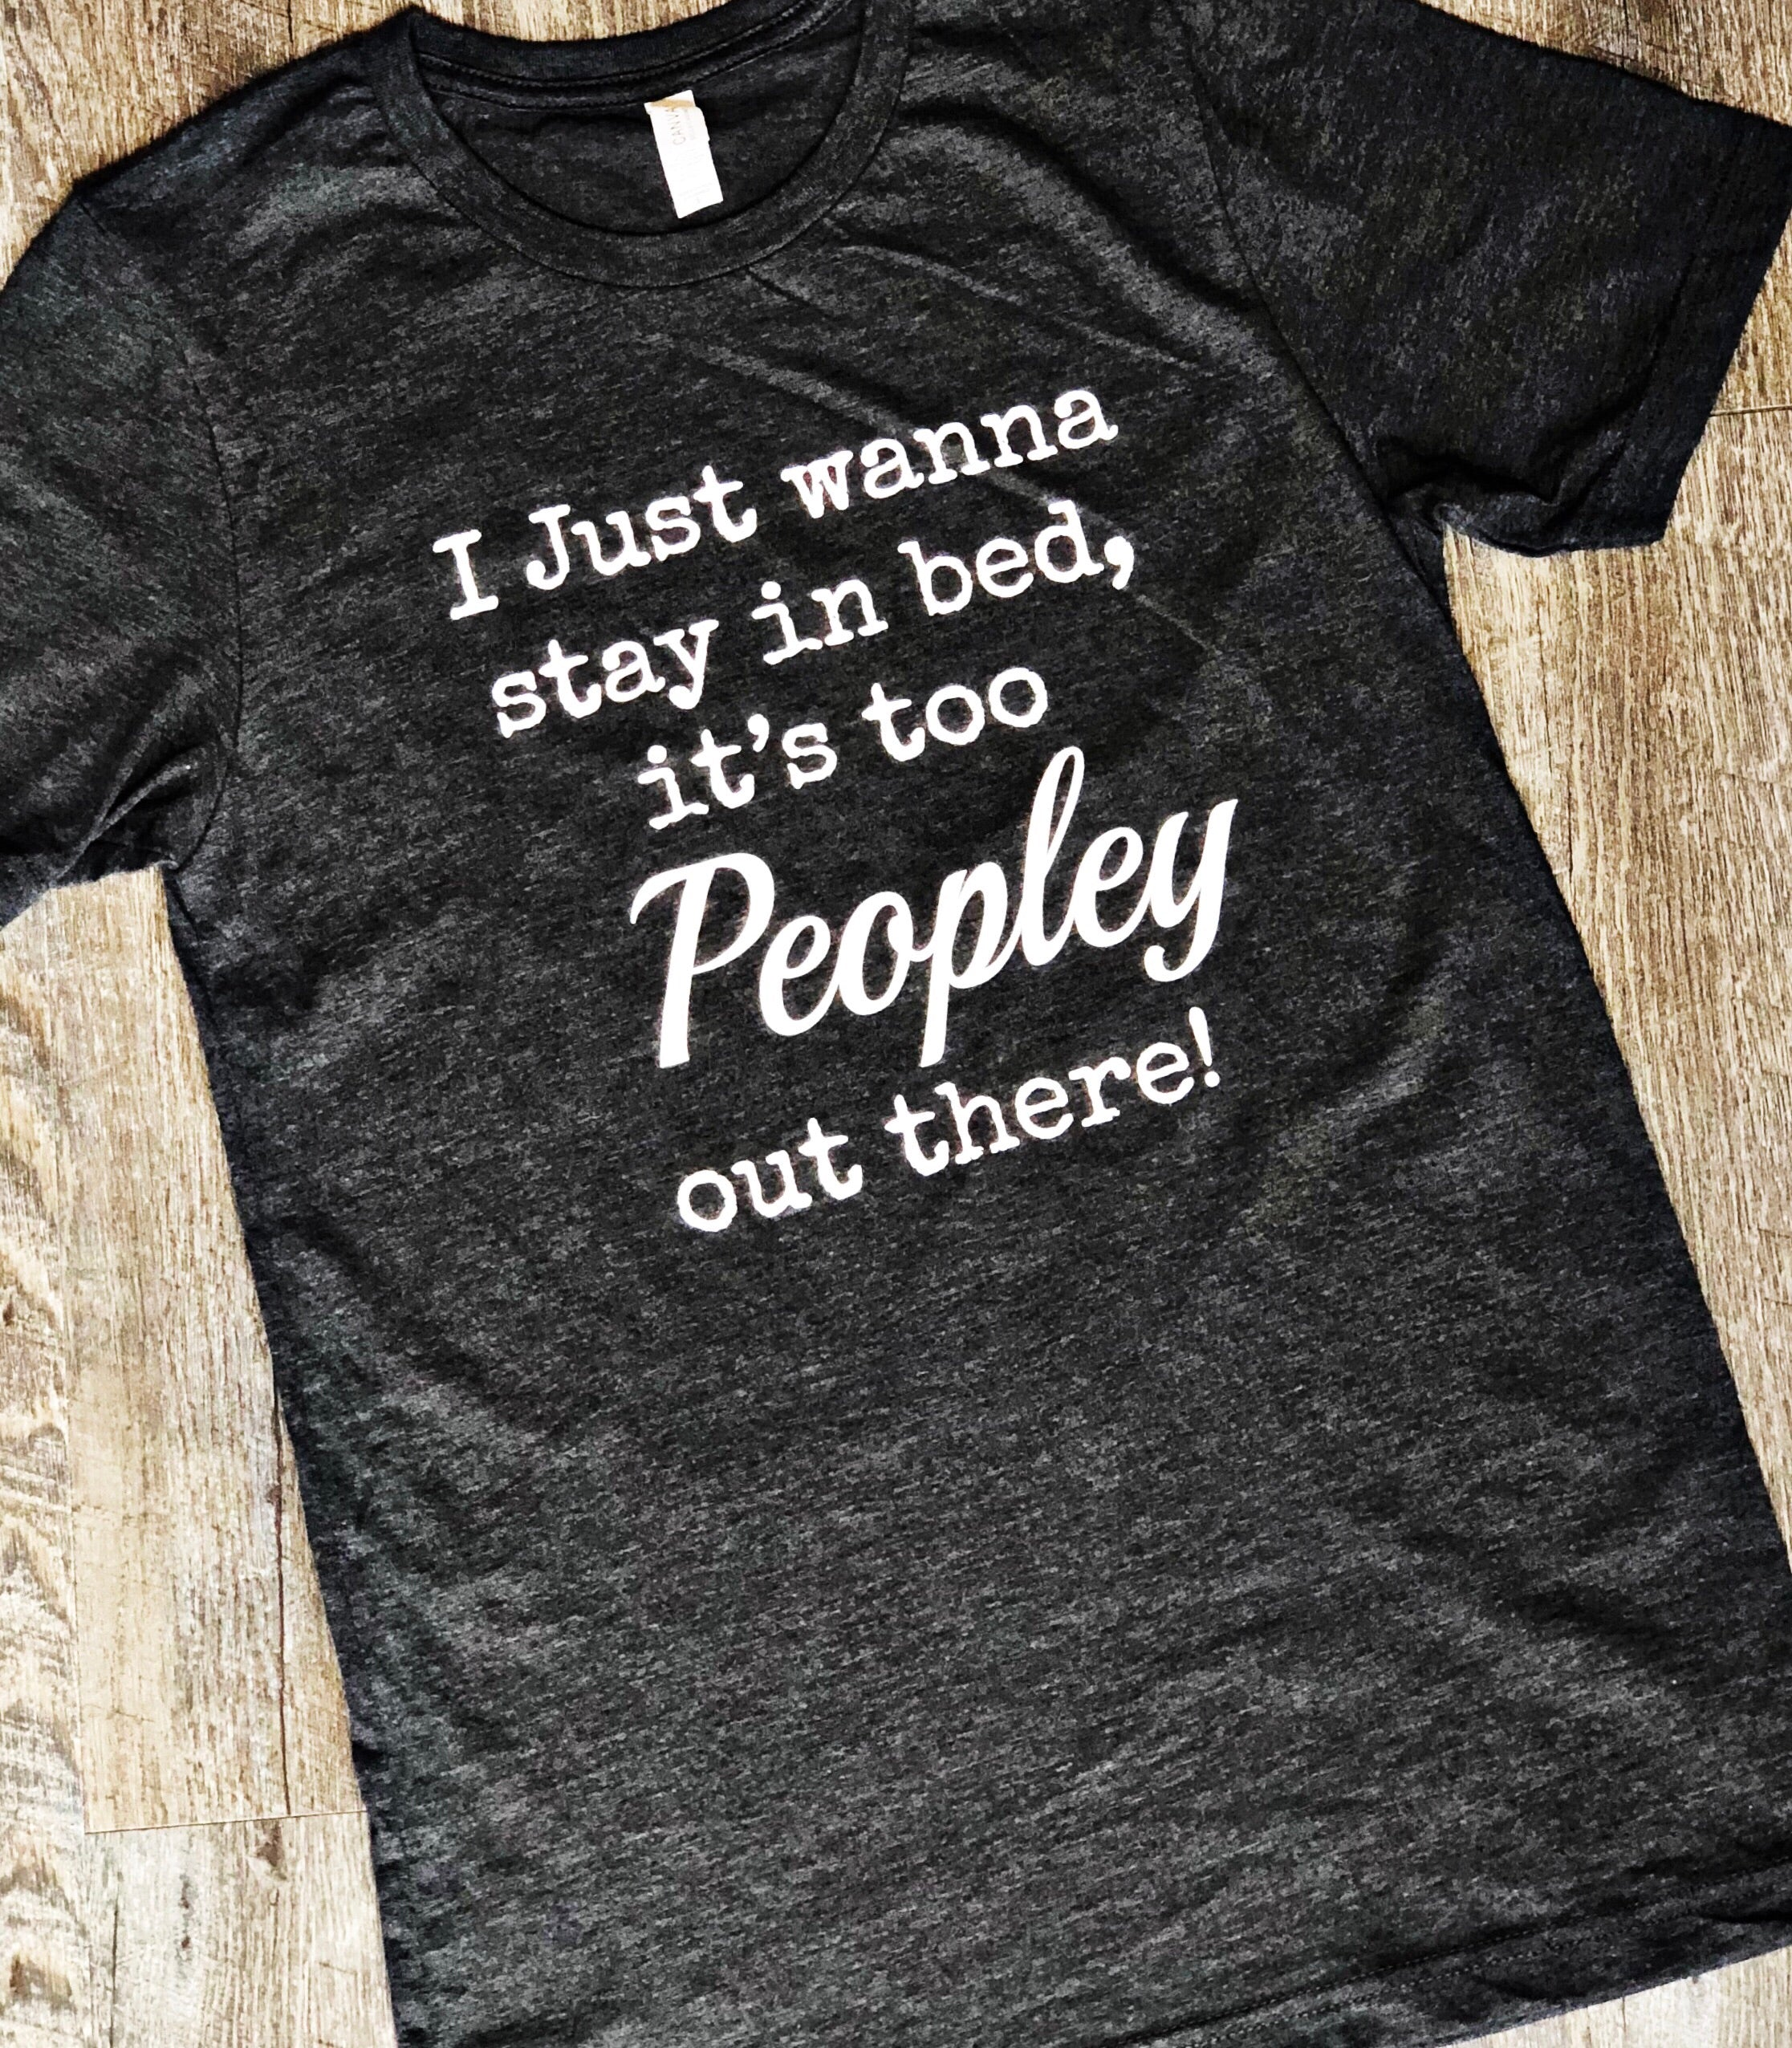 """I Just Wanna Stay In Bed, It's Too Peopley Out There!"" Graphic Tee"